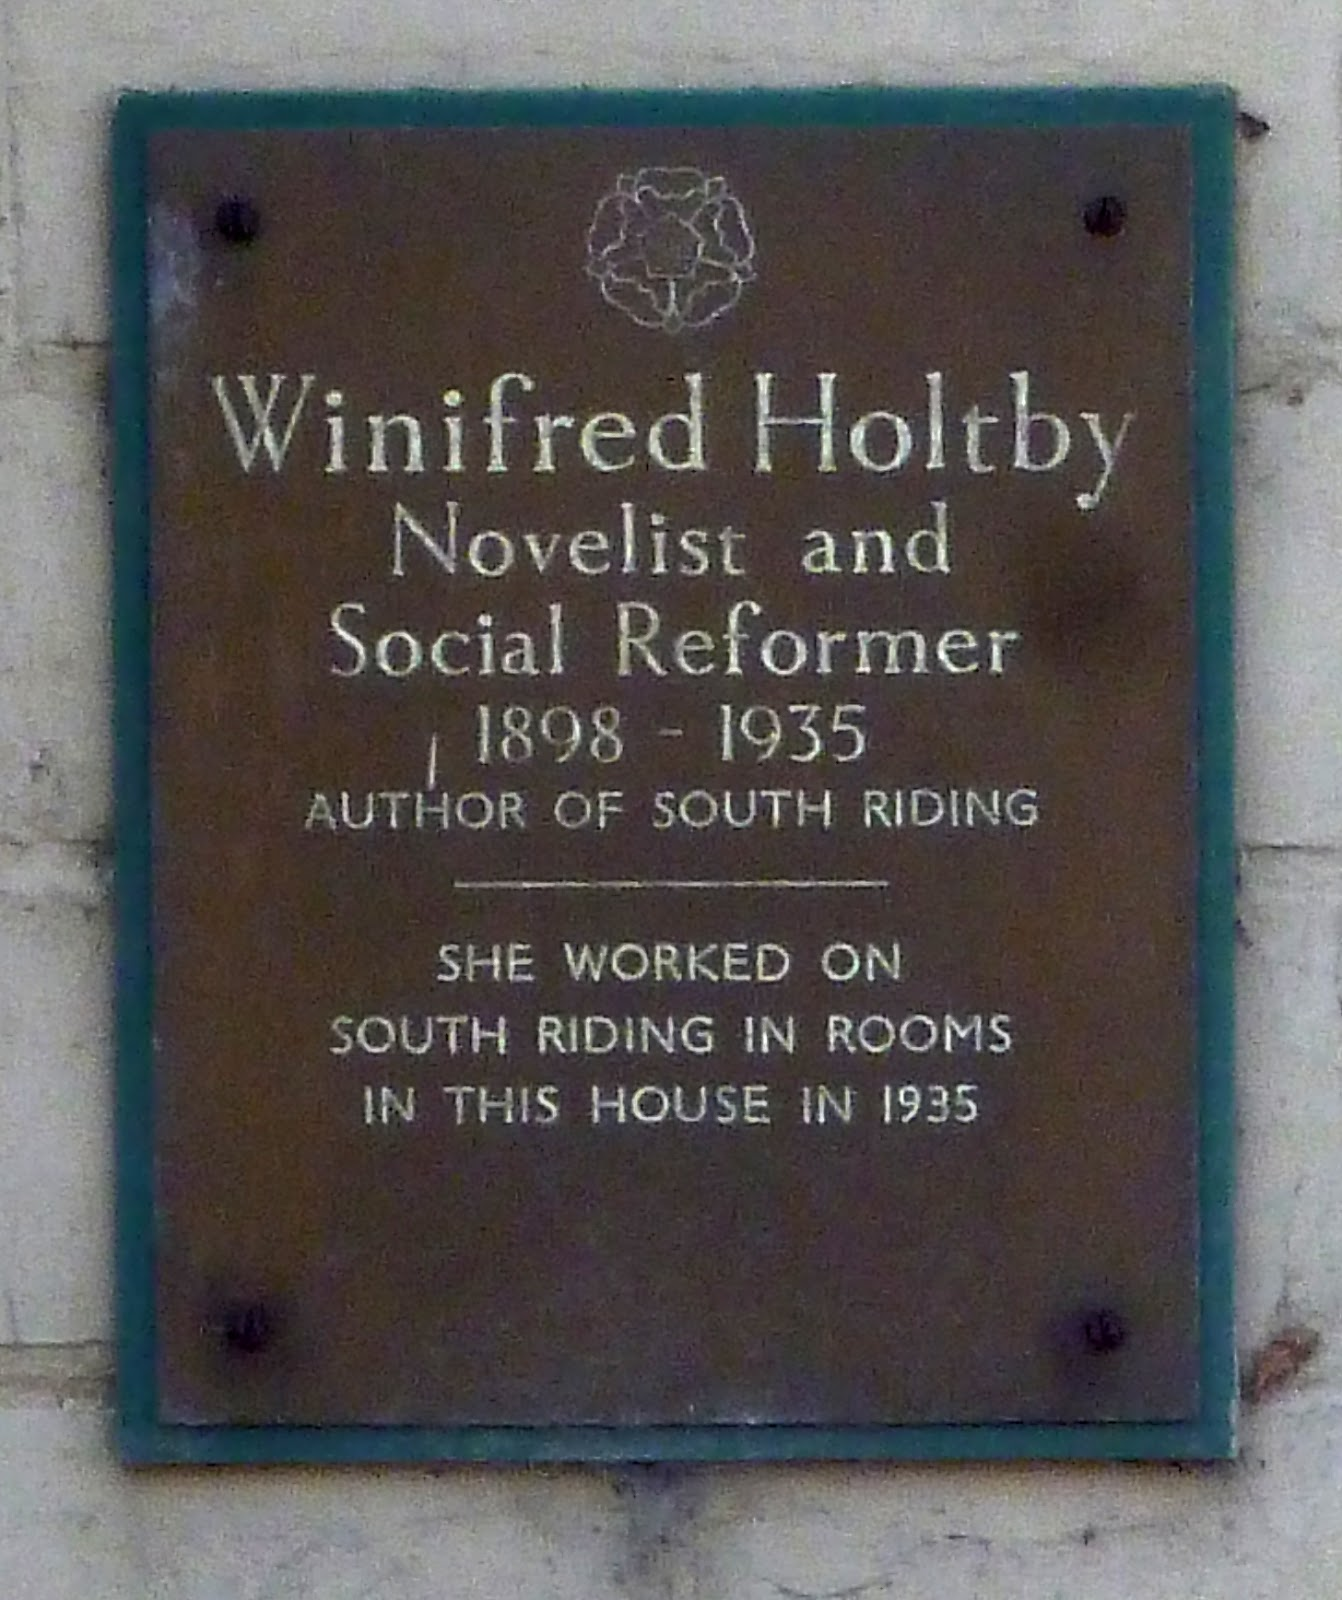 Dr Tony Shaw Winifred Holtby In East Yorkshire 2 Hornsea